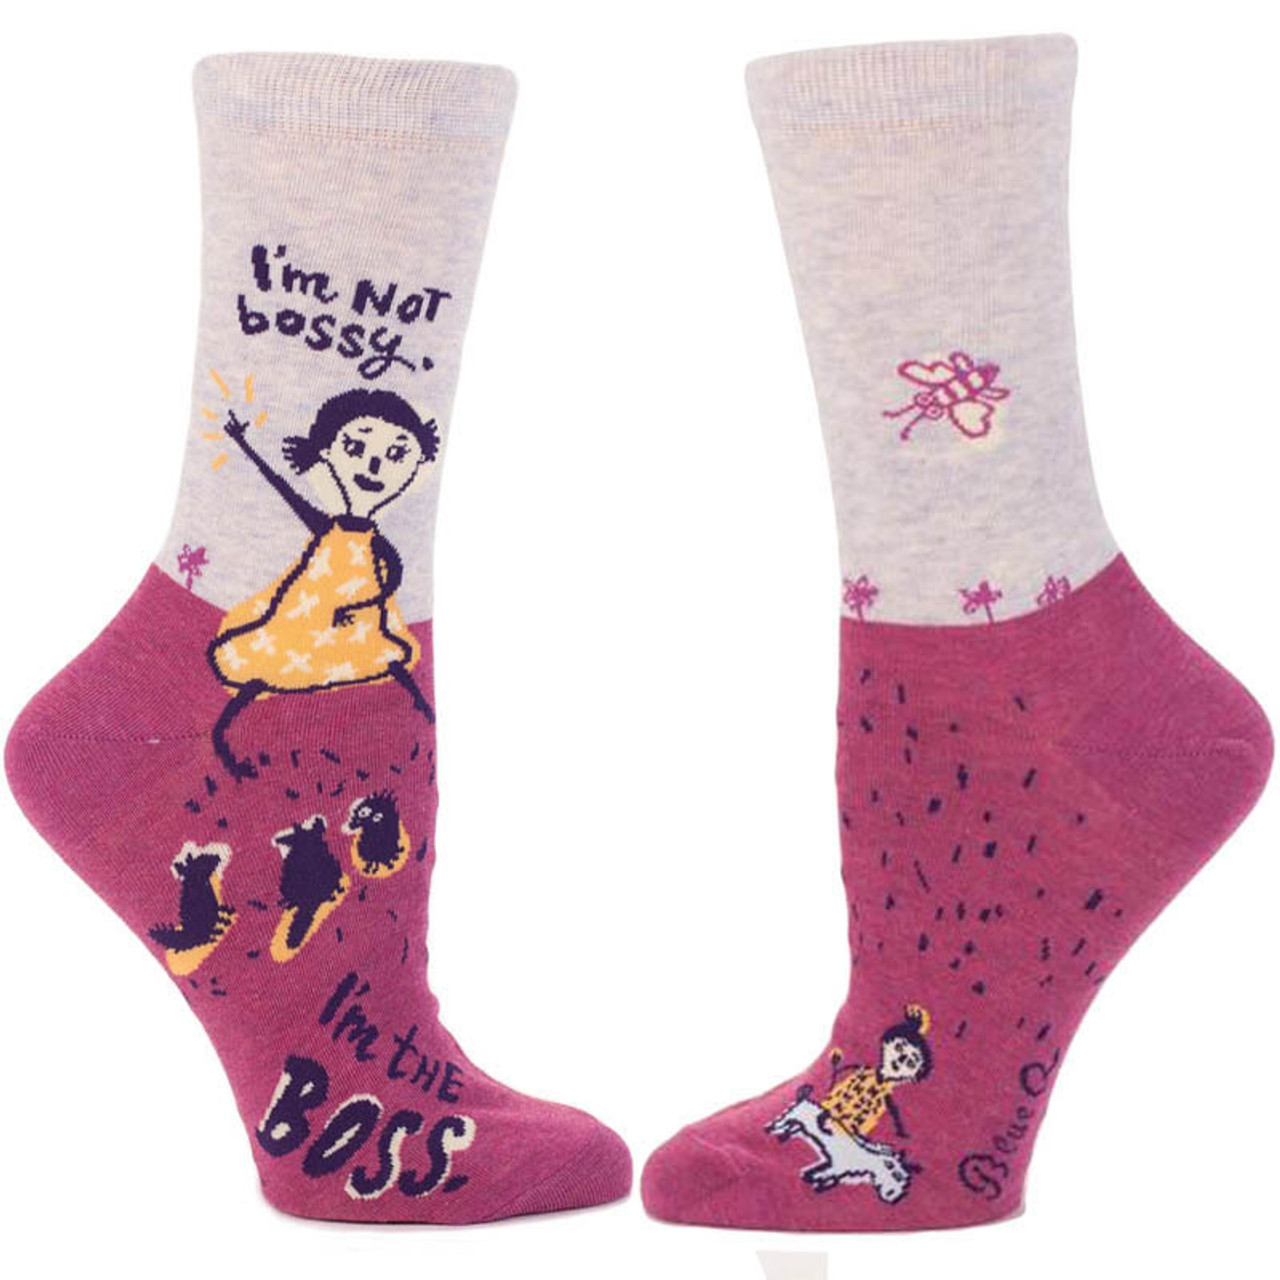 7e4726269dff4 I'm Not Bossy. I'm the Boss. Socks and more Unique Gifts